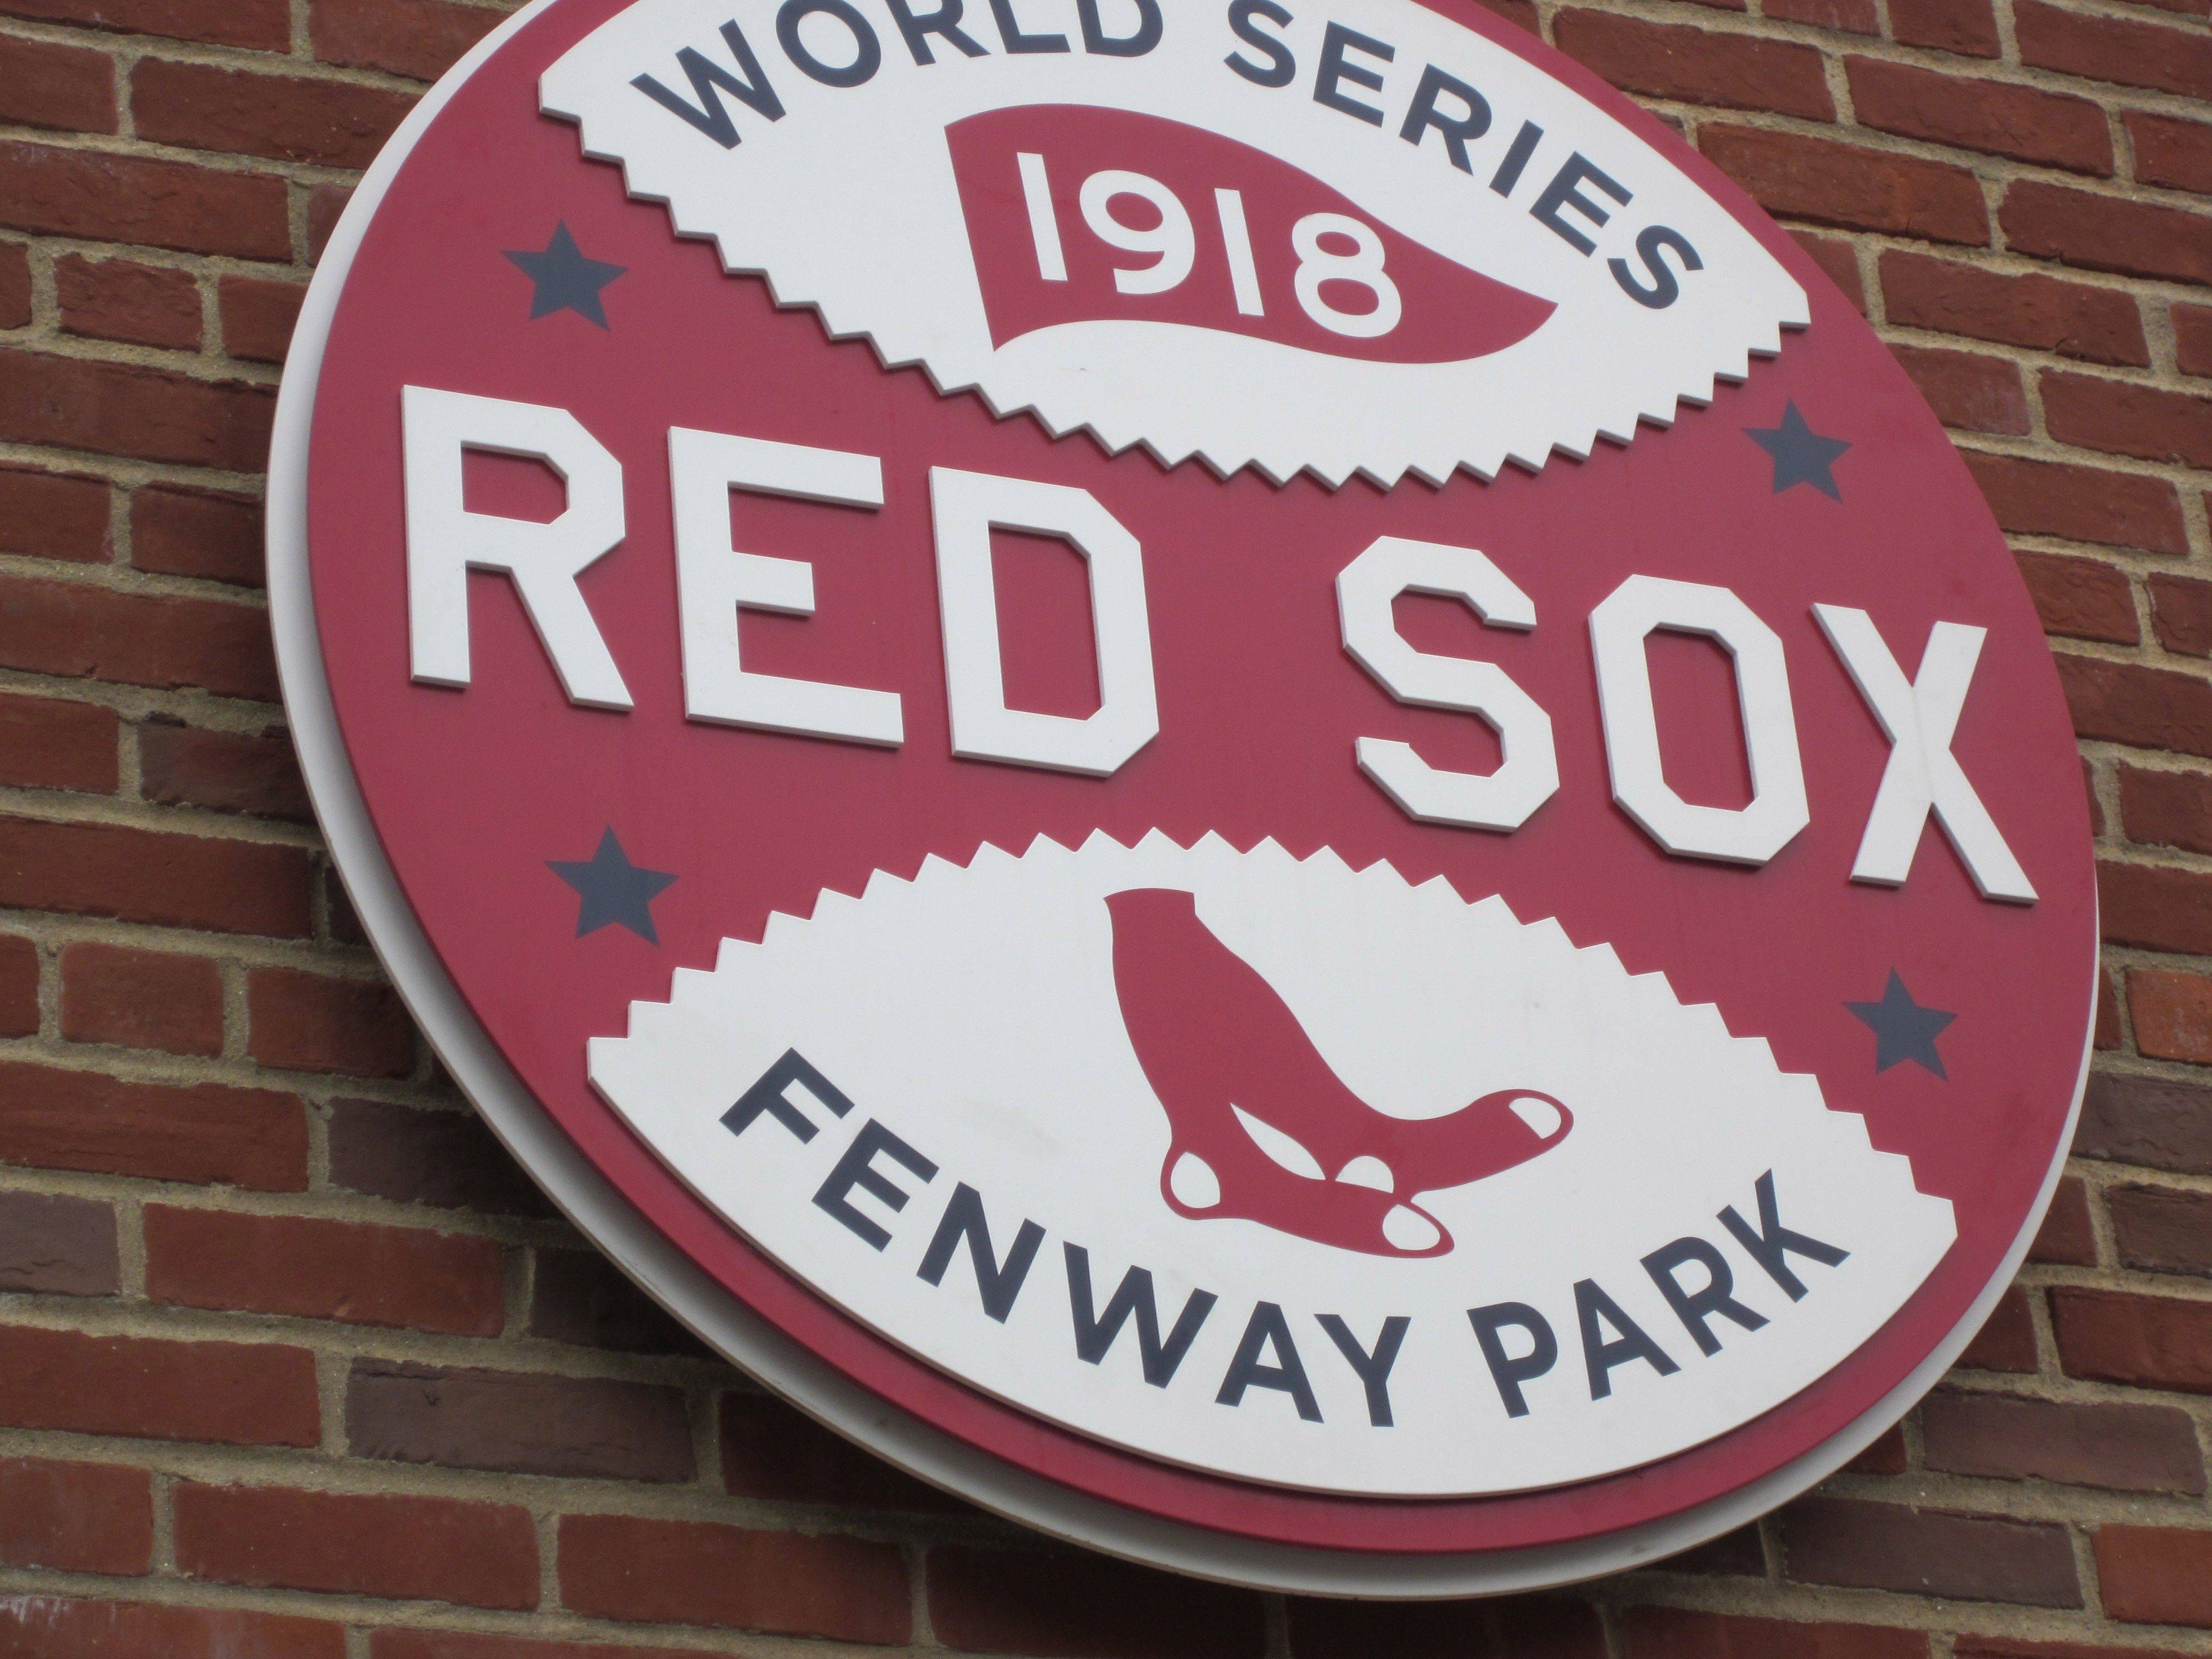 An emblem from the last time the Cubs and Red Sox met at Fenway Park, for the 1918 World Series, adorns the famed Boston ballpark. The Cubs played the Red Sox Friday, May 20, in a three-game series..